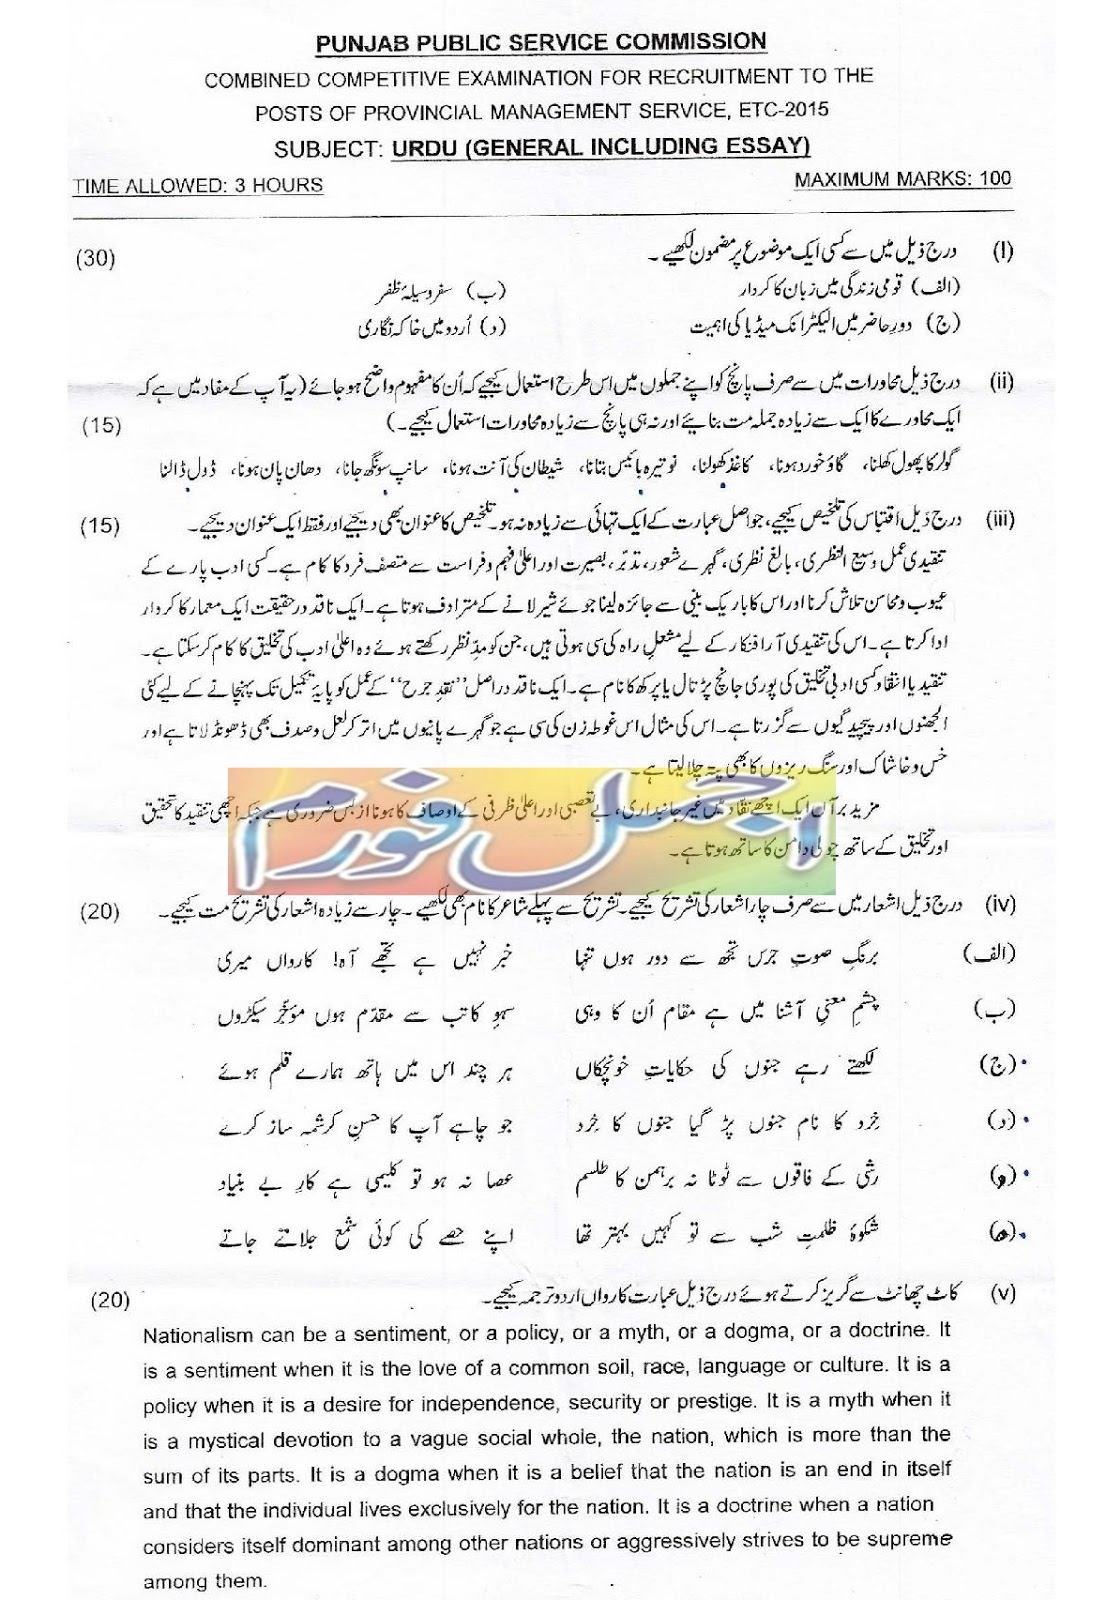 pms urdu general including essay paper ppsc mcqs past punjab public service commission lahore competitive examination 2015 pcs pms 2015 2016 urdu general including essay paper